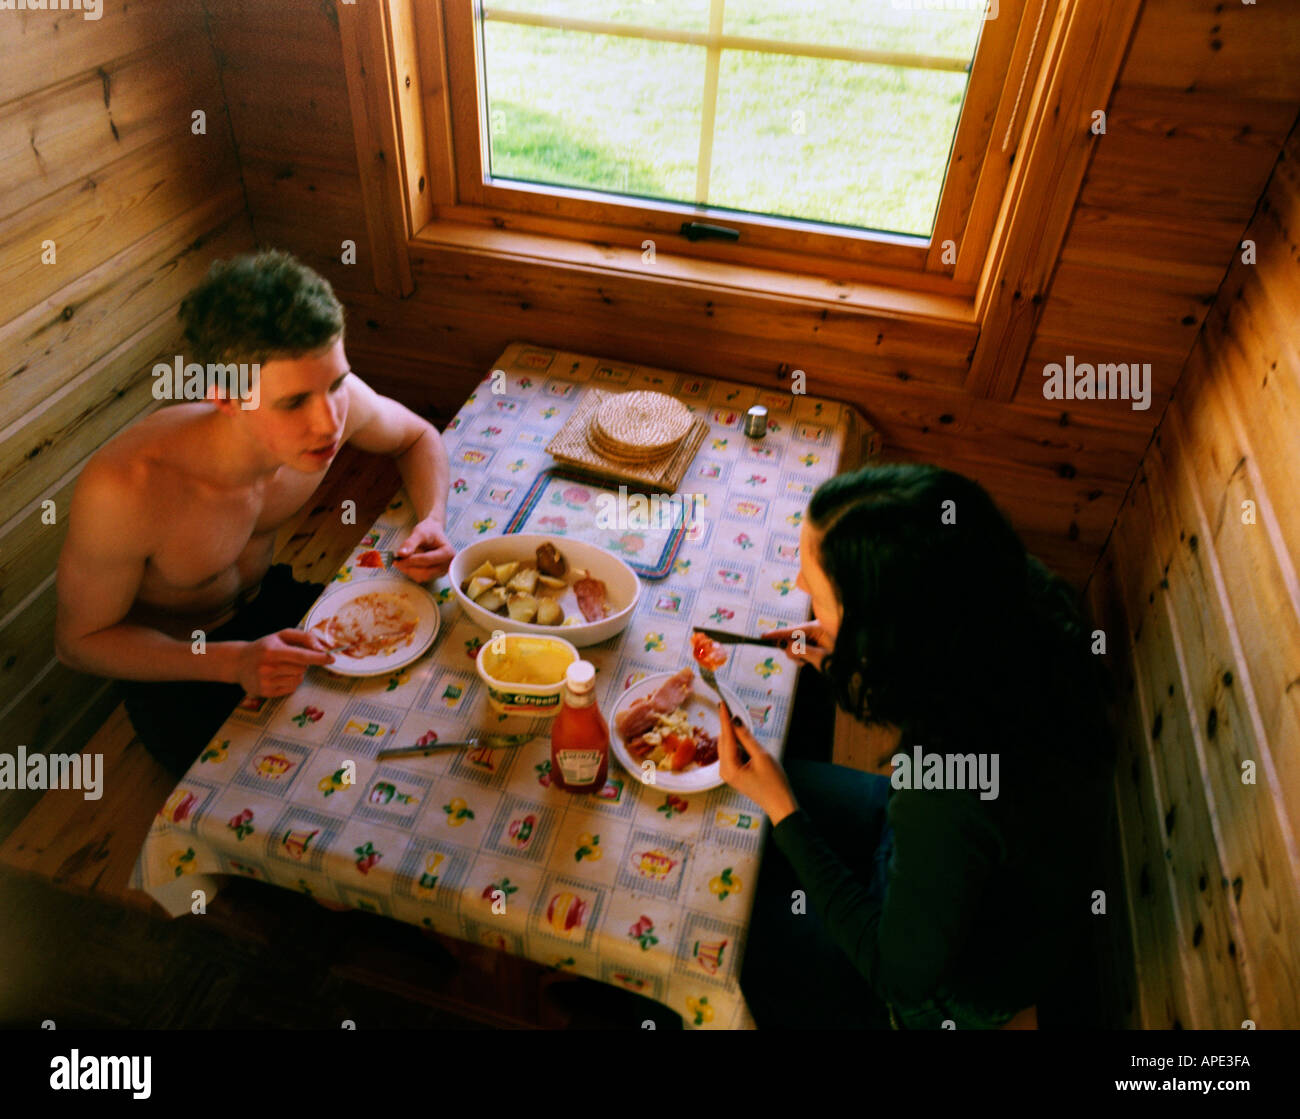 teenage brother and sister eating fried breakfast in a holiday log cabin seen from above - Stock Image